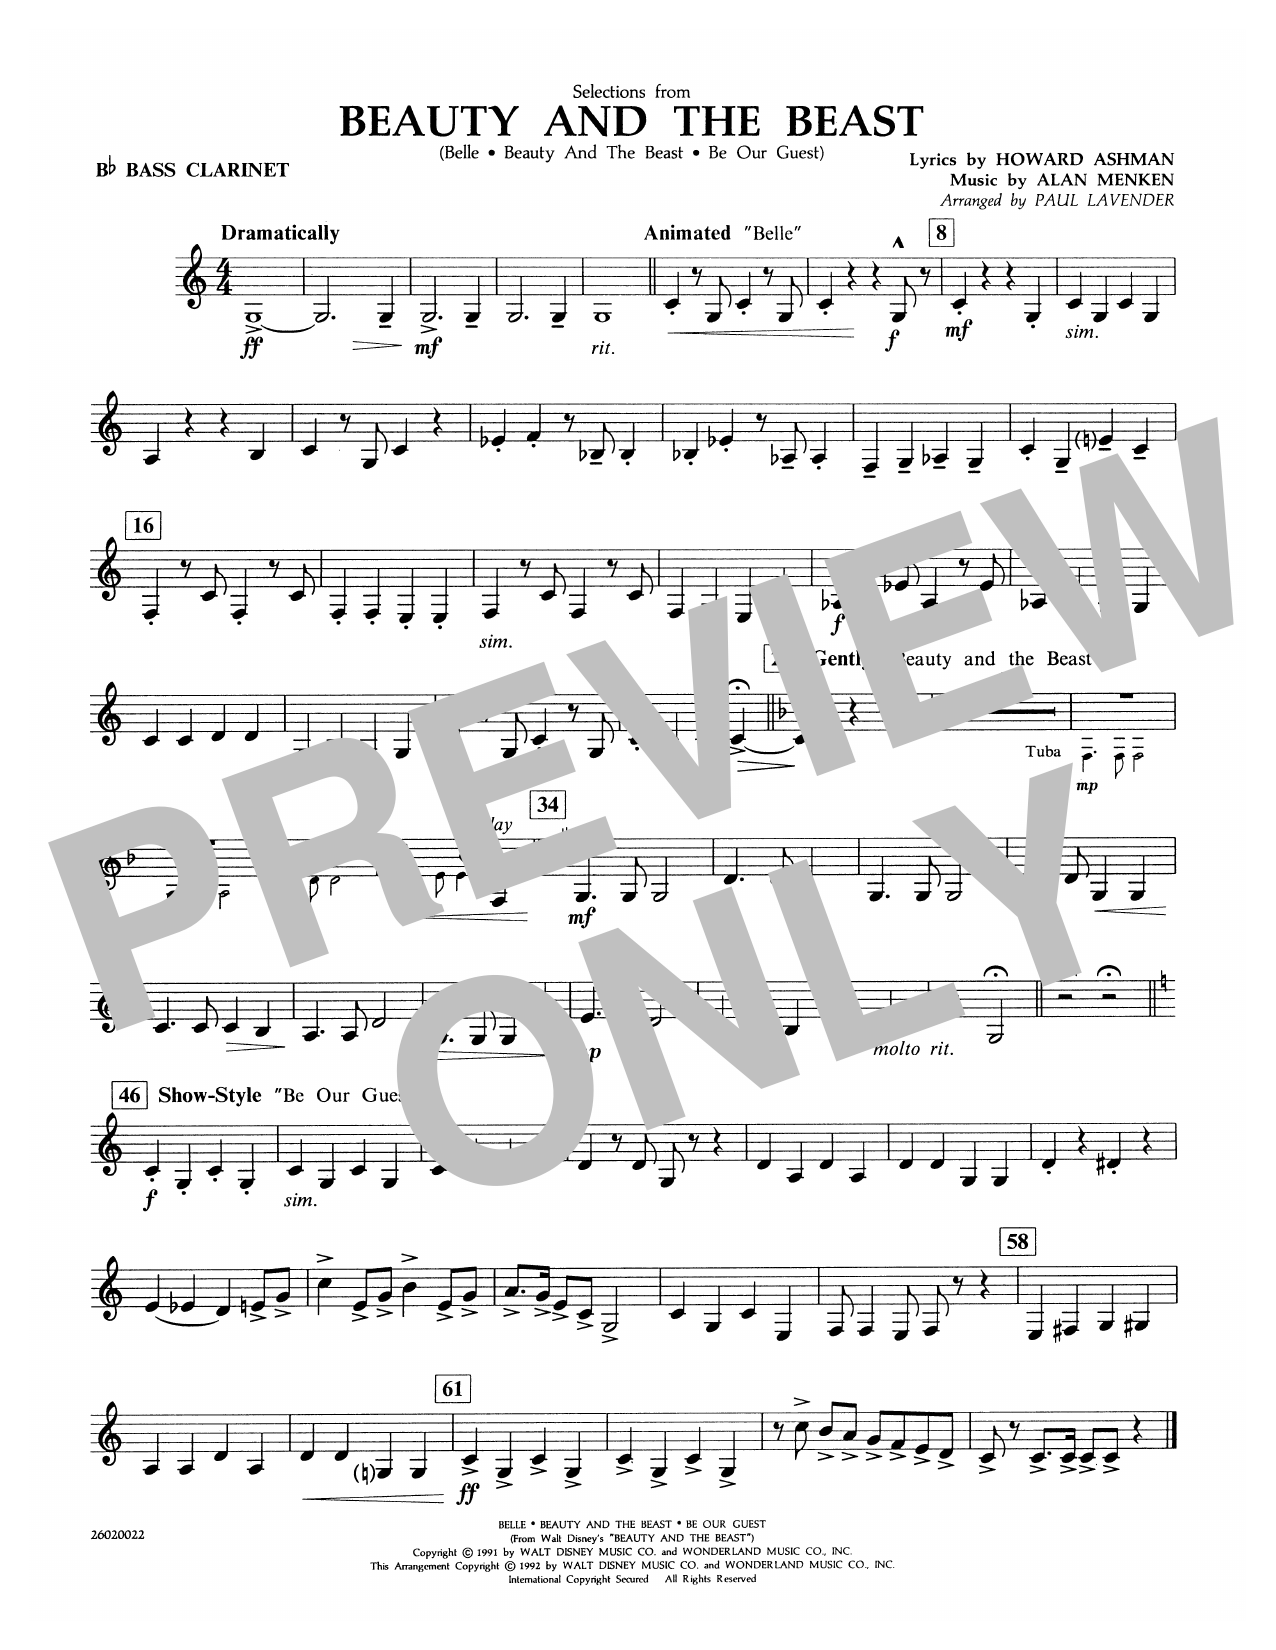 Paul Lavender Selections from Beauty and the Beast - Bb Bass Clarinet sheet music notes and chords. Download Printable PDF.